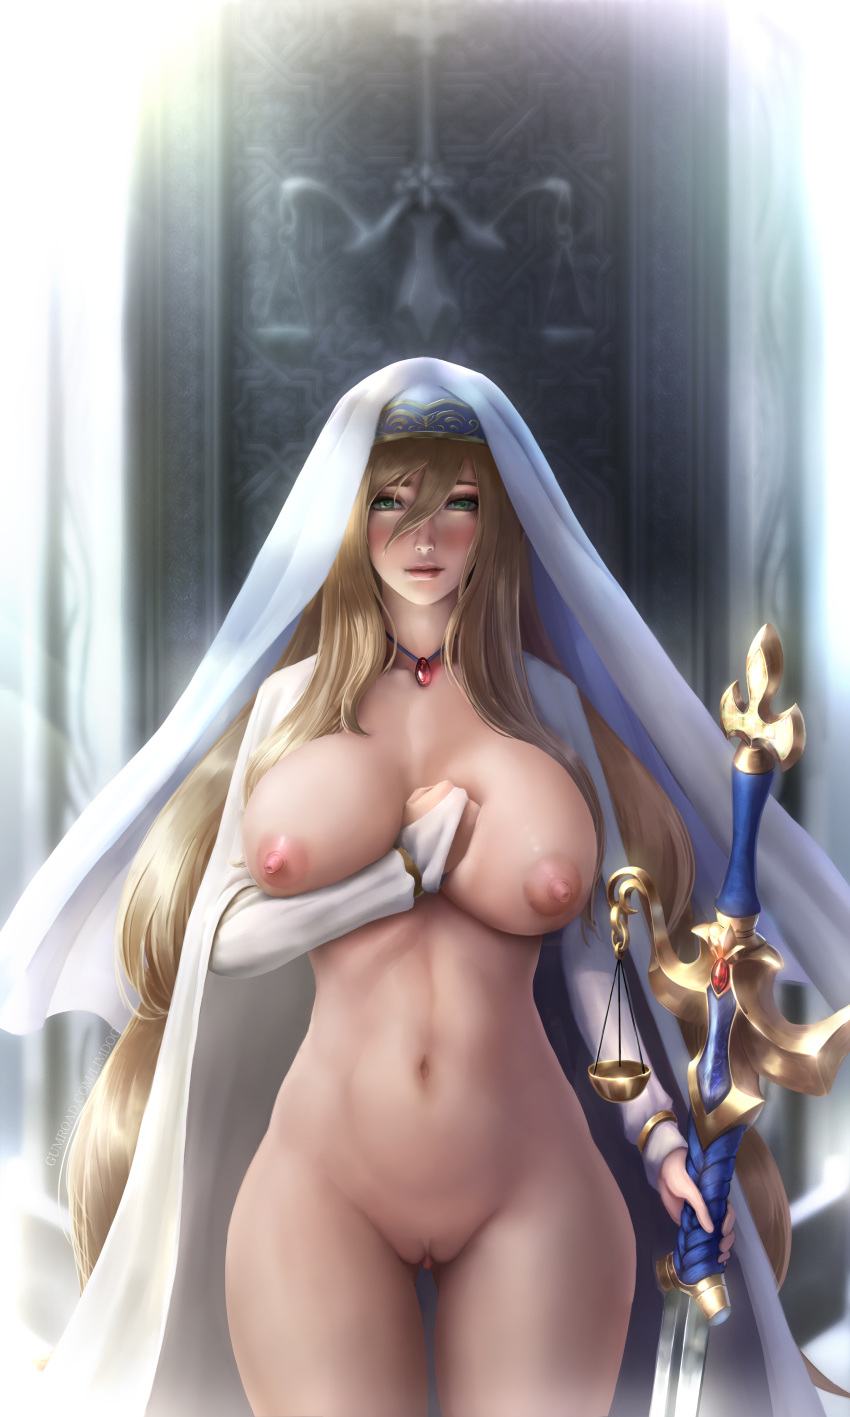 maiden dragon azure sword of Nude anime girls being impregnated gifs